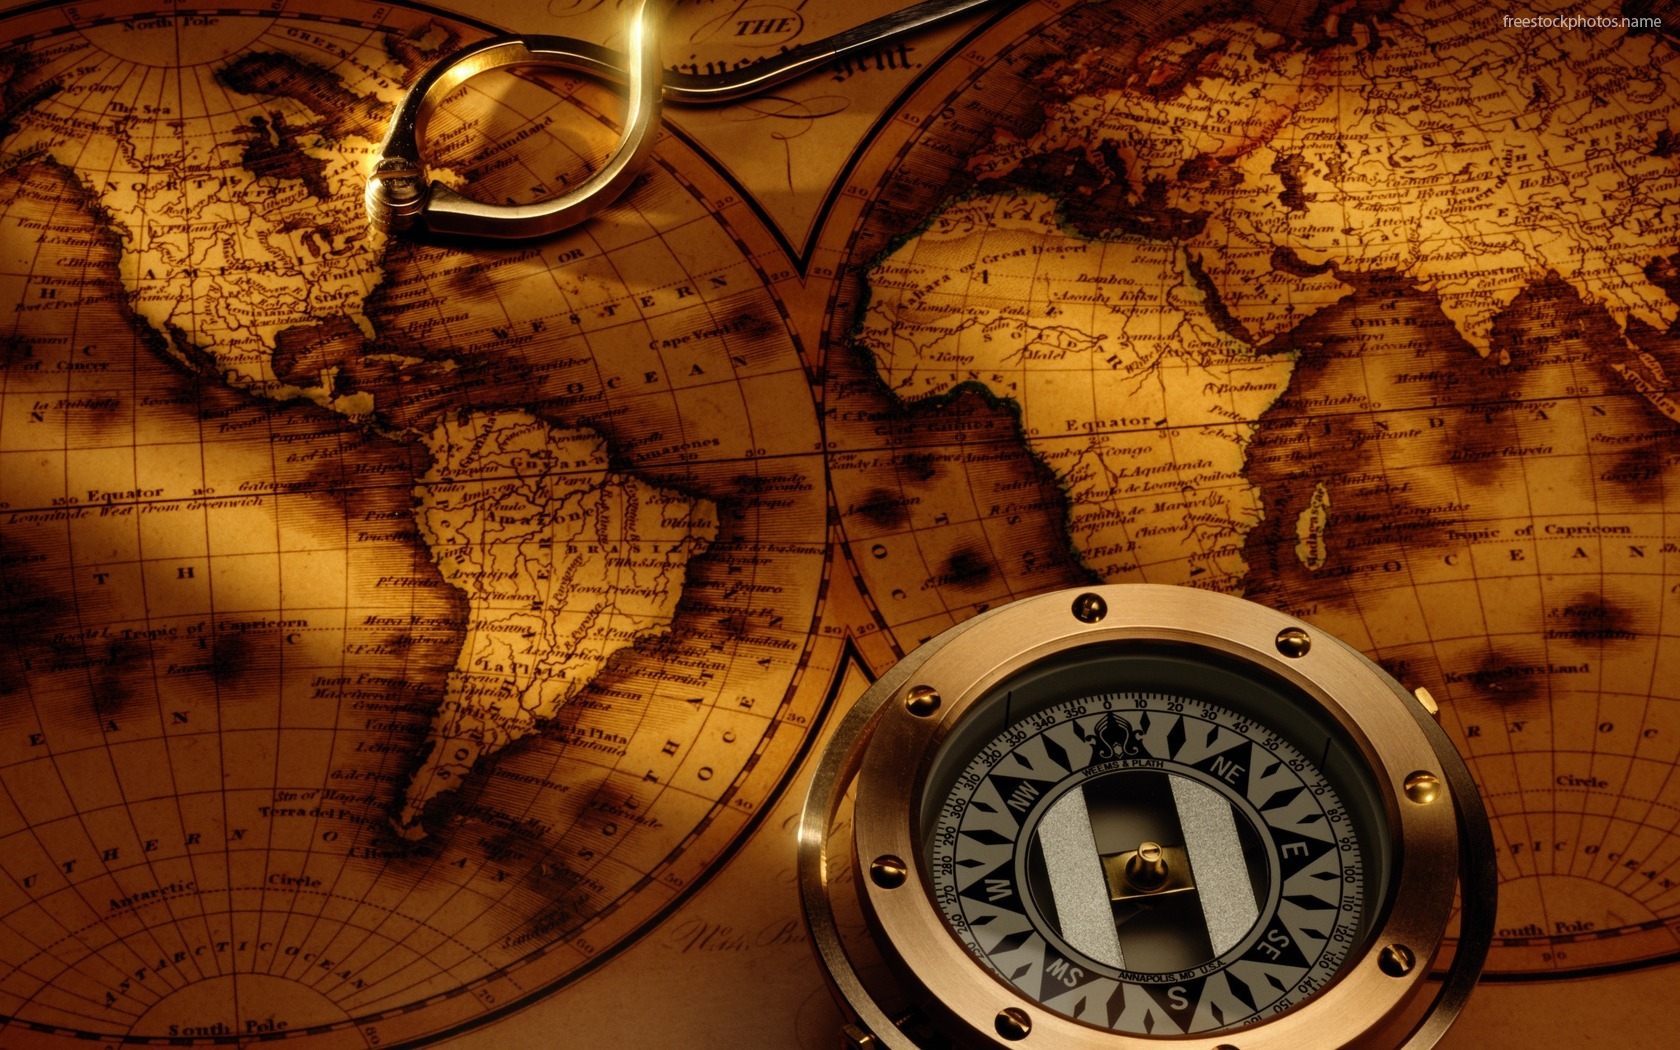 download Download Stock Photos of old world map with compass 1680x1050